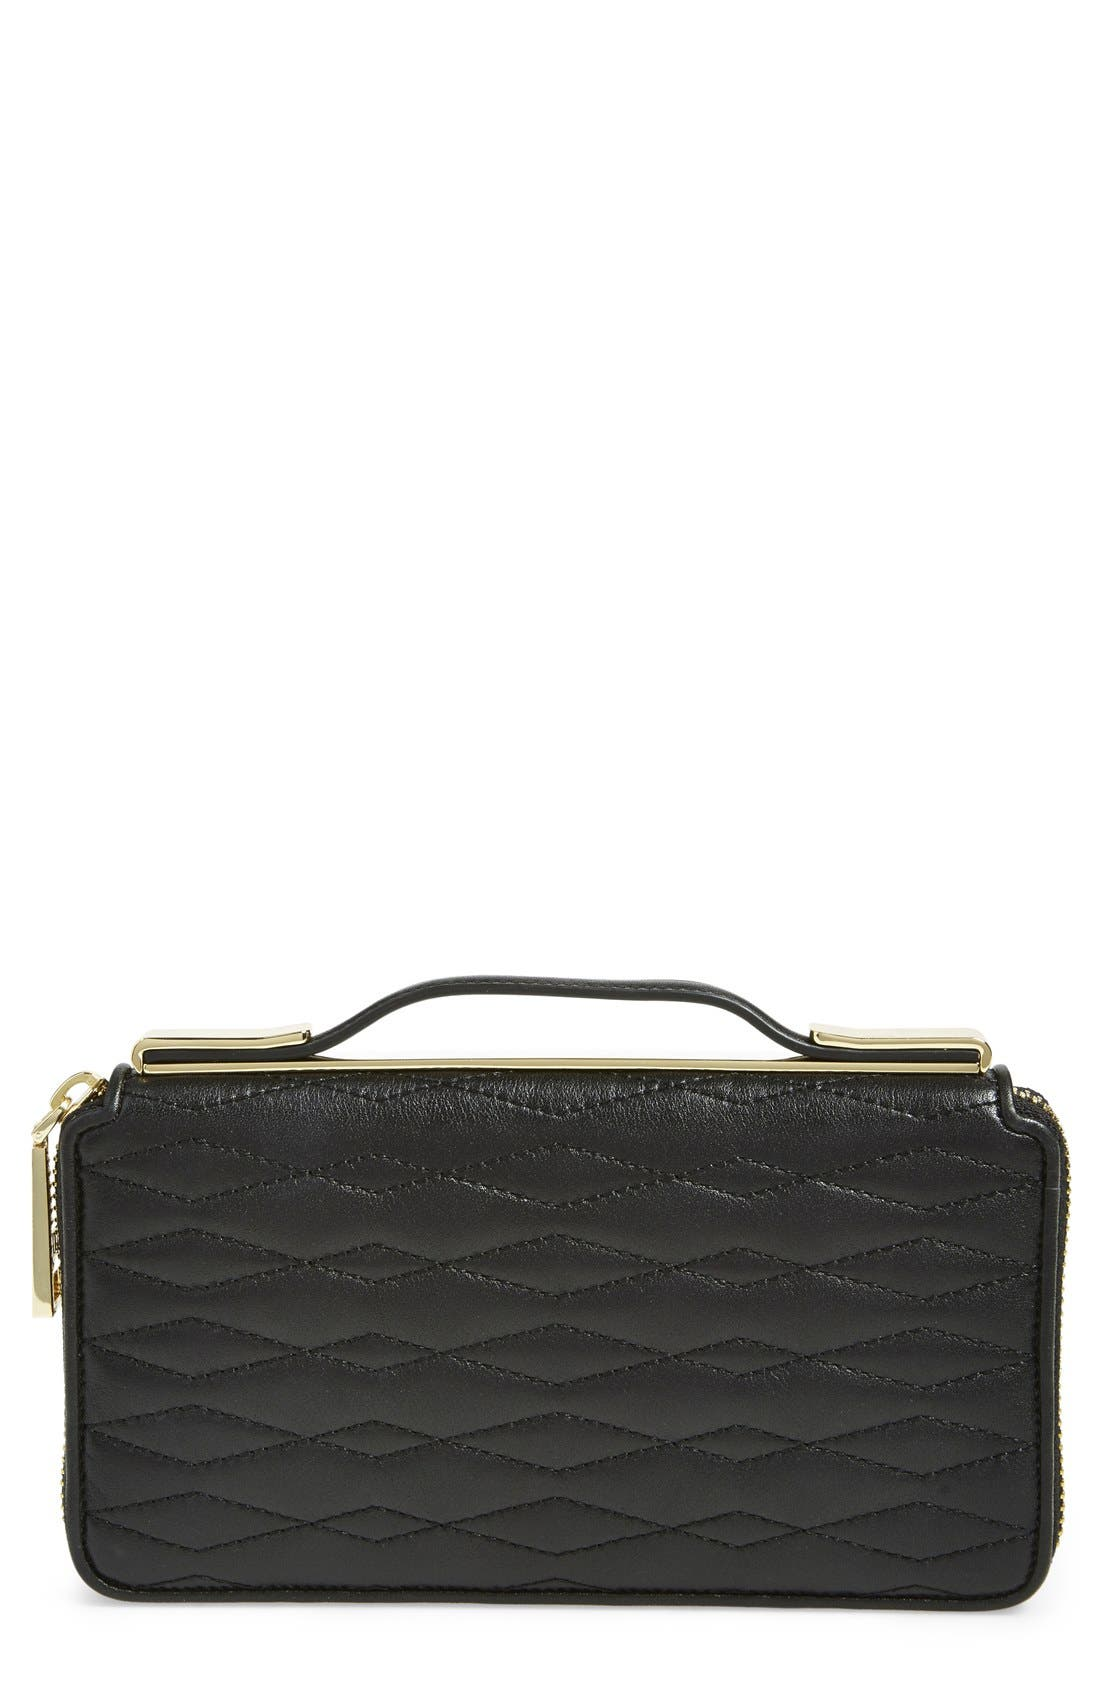 Alternate Image 1 Selected - Ivanka Trump 'Bedminster' Leather Clutch